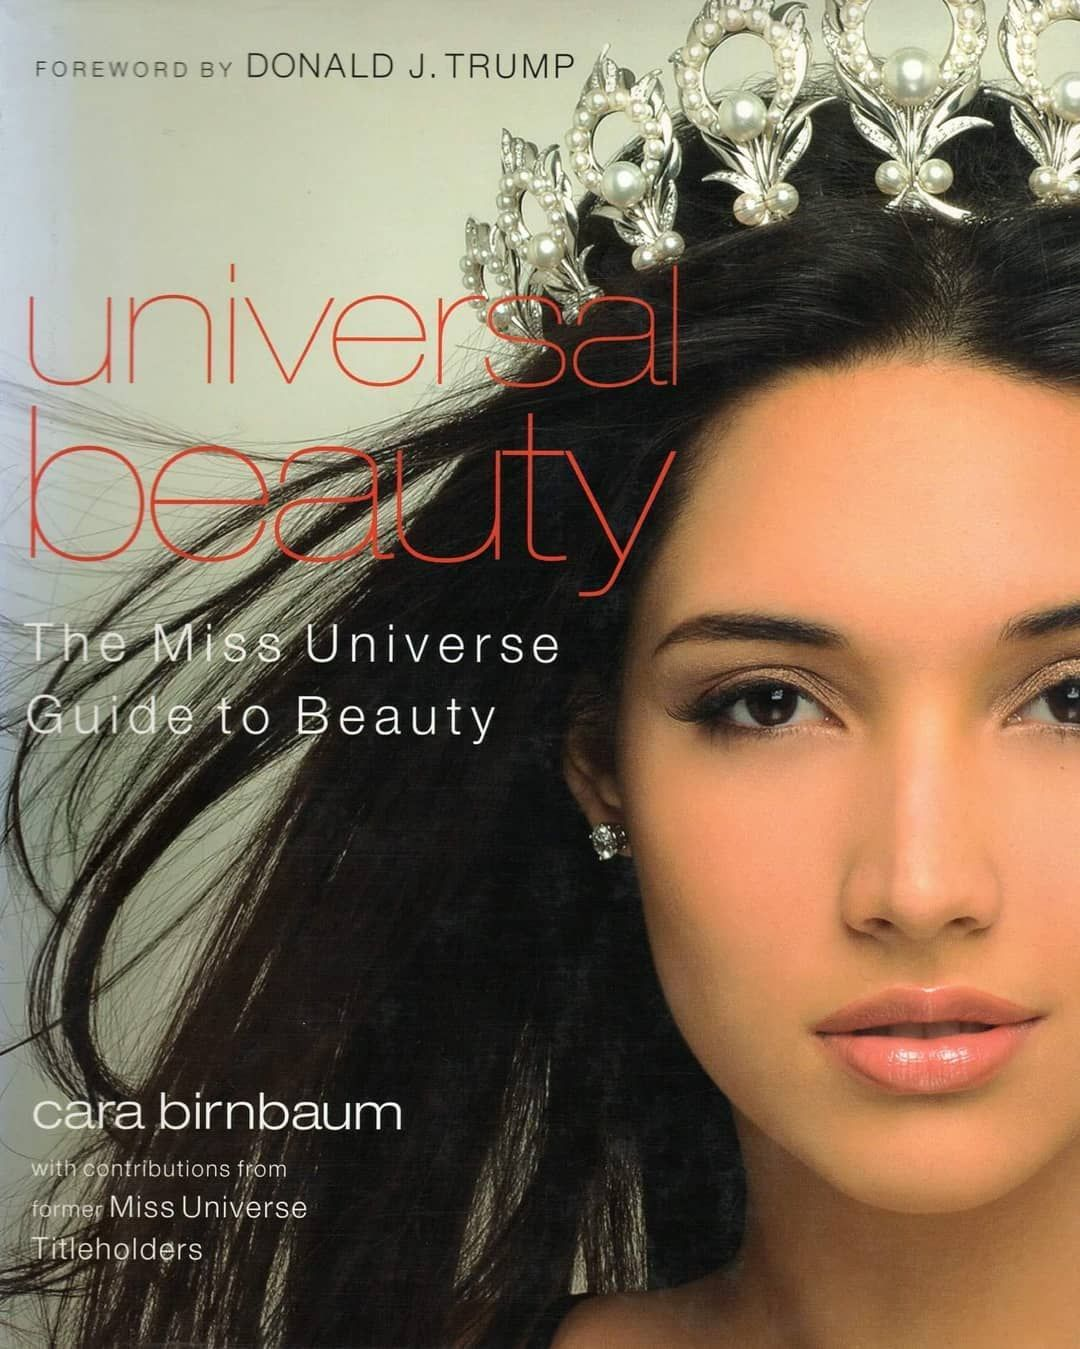 Shake That Beauty On Instagram Ameliavega Miss Universe 2003 From Dominican Republic On The Cover Of Universal Beauties Book Published By The Miss Universe O